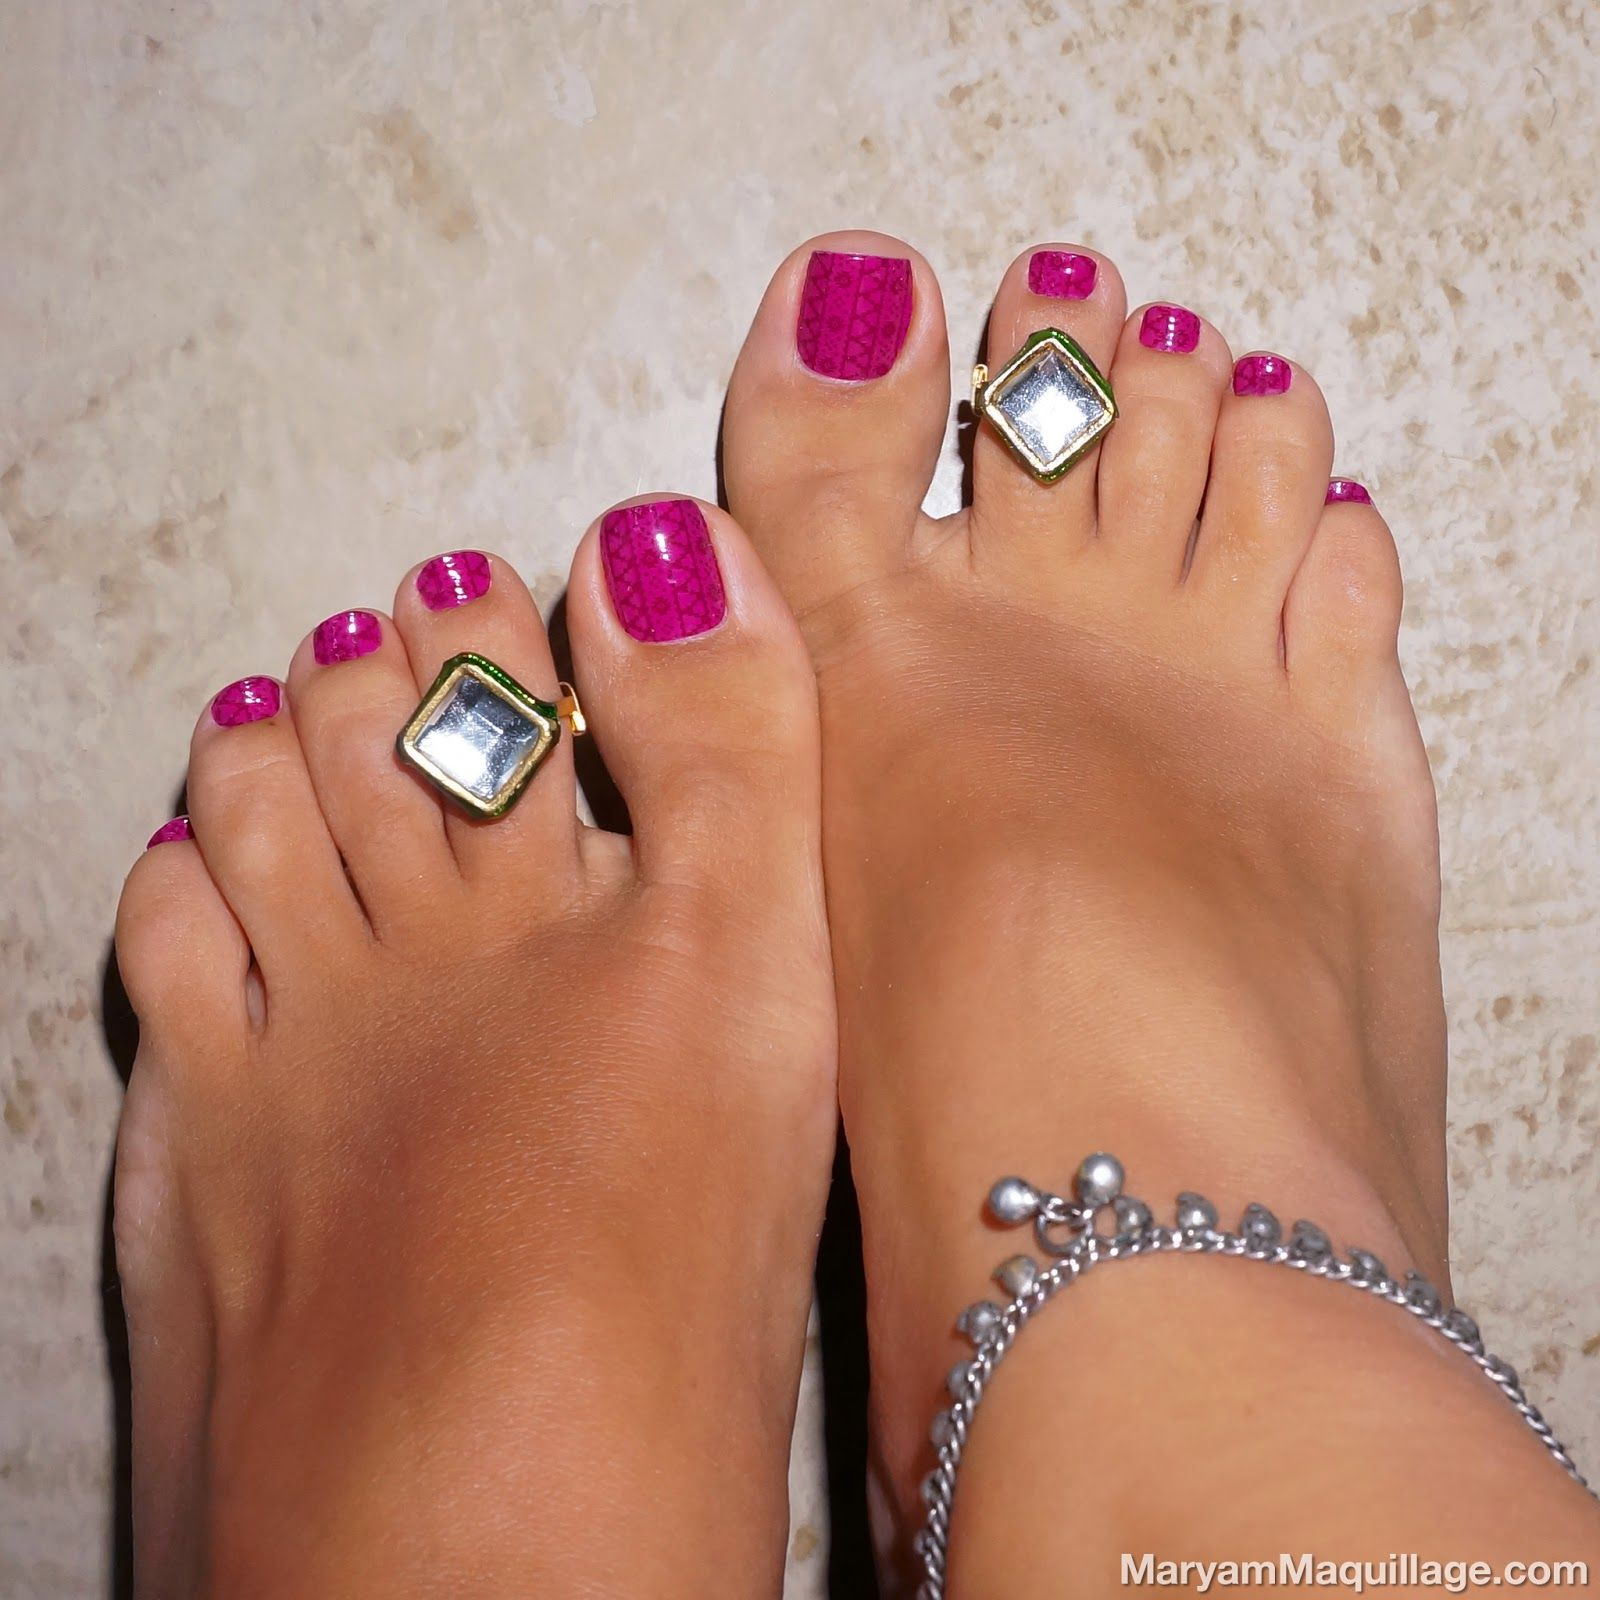 sexy foot fetish toenails - Google Search | jewelry | Pinterest